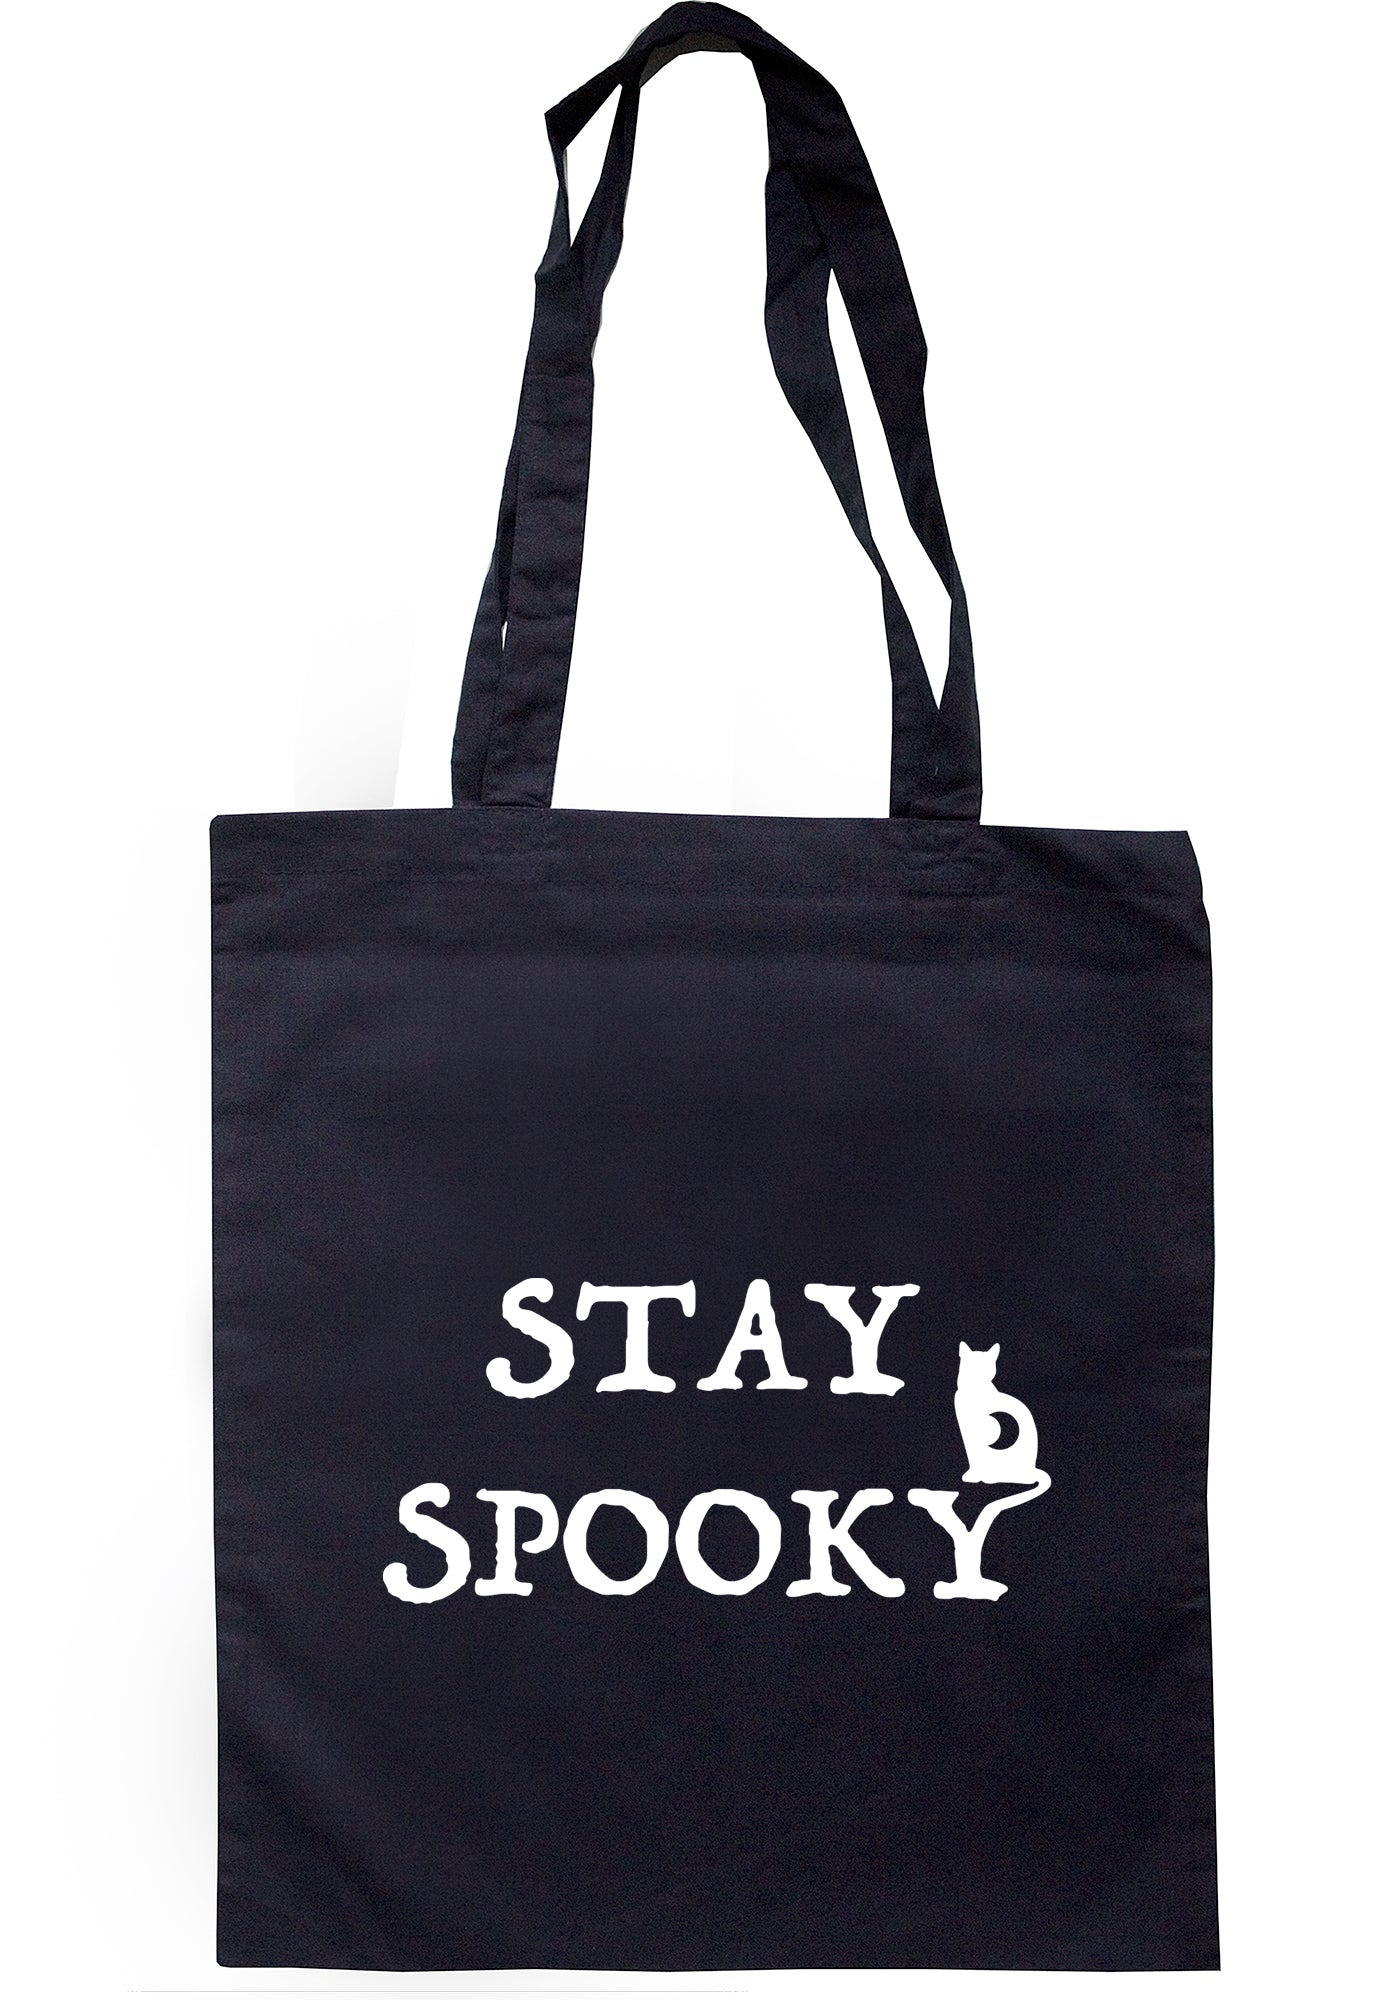 Stay Spooky Tote Bag A0023